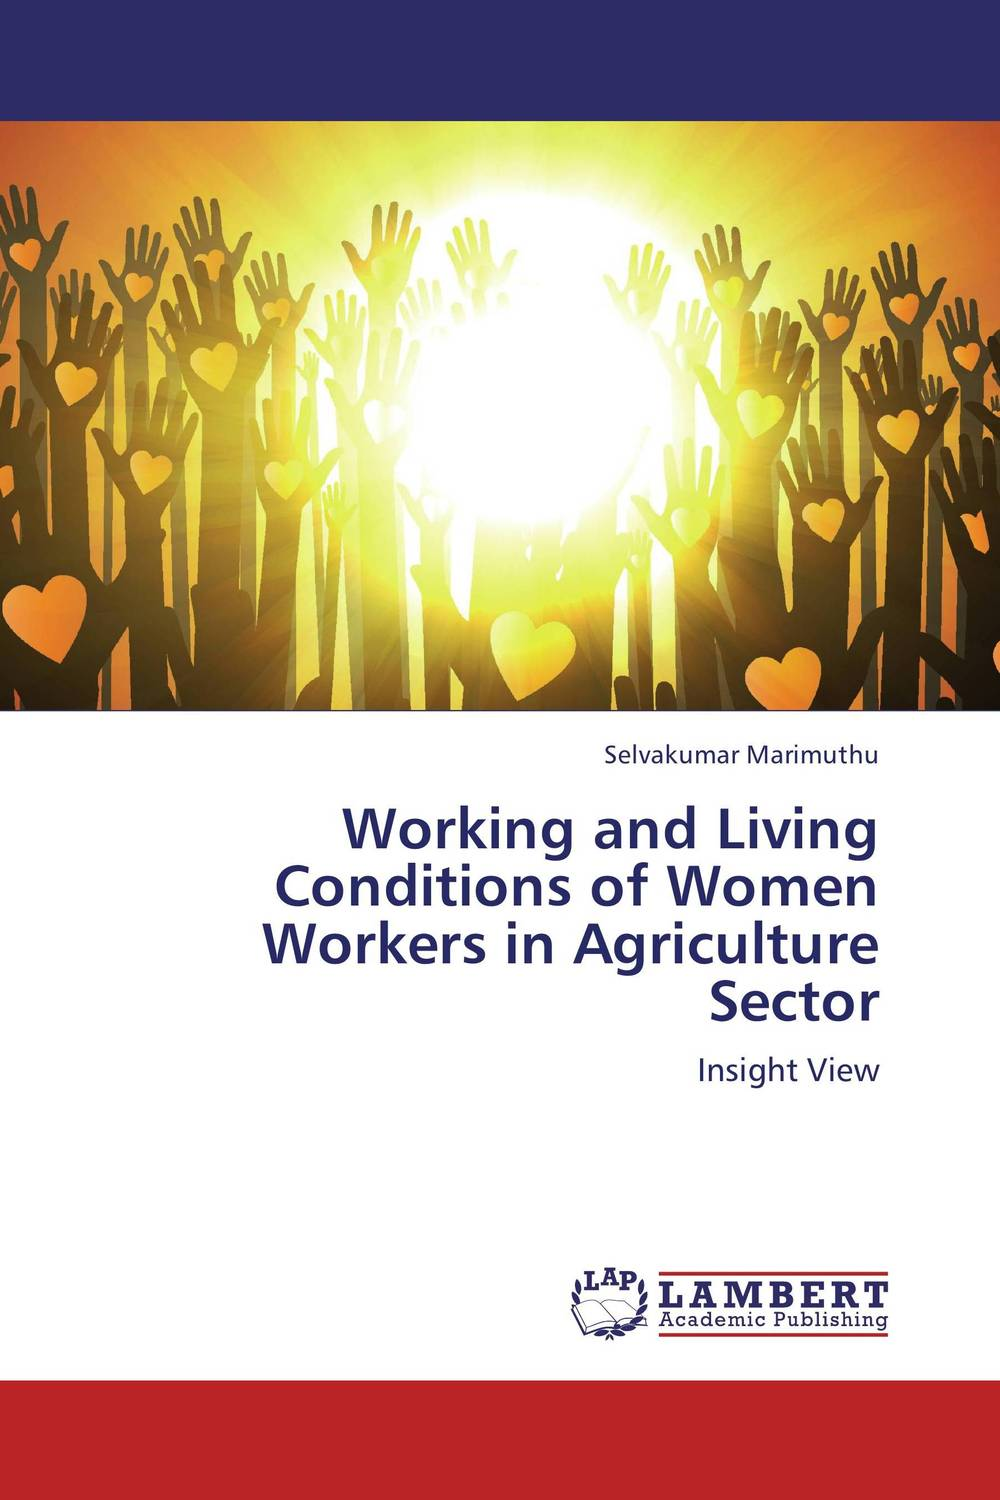 Working and Living Conditions of Women Workers in Agriculture Sector deepita chakravarty expansion of markets and women workers in india